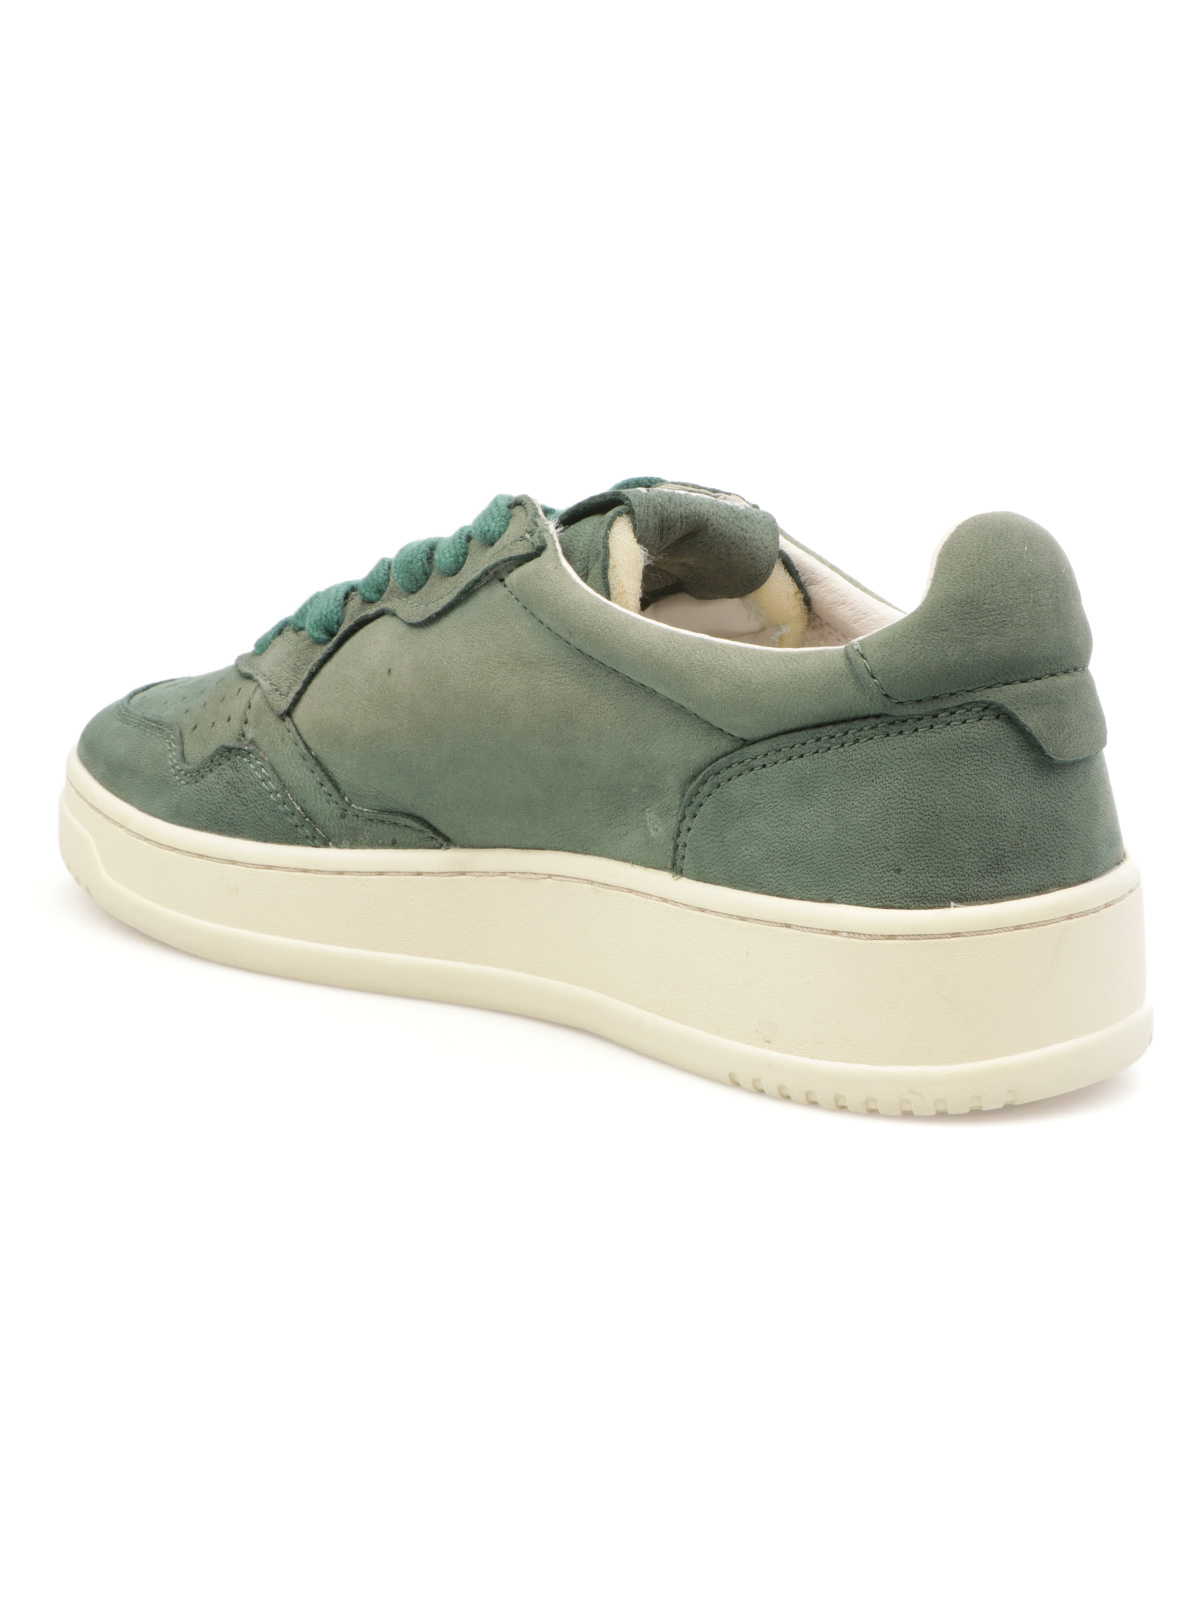 Picture of AUTRY | Men's AULM Washed Leather Sneakers